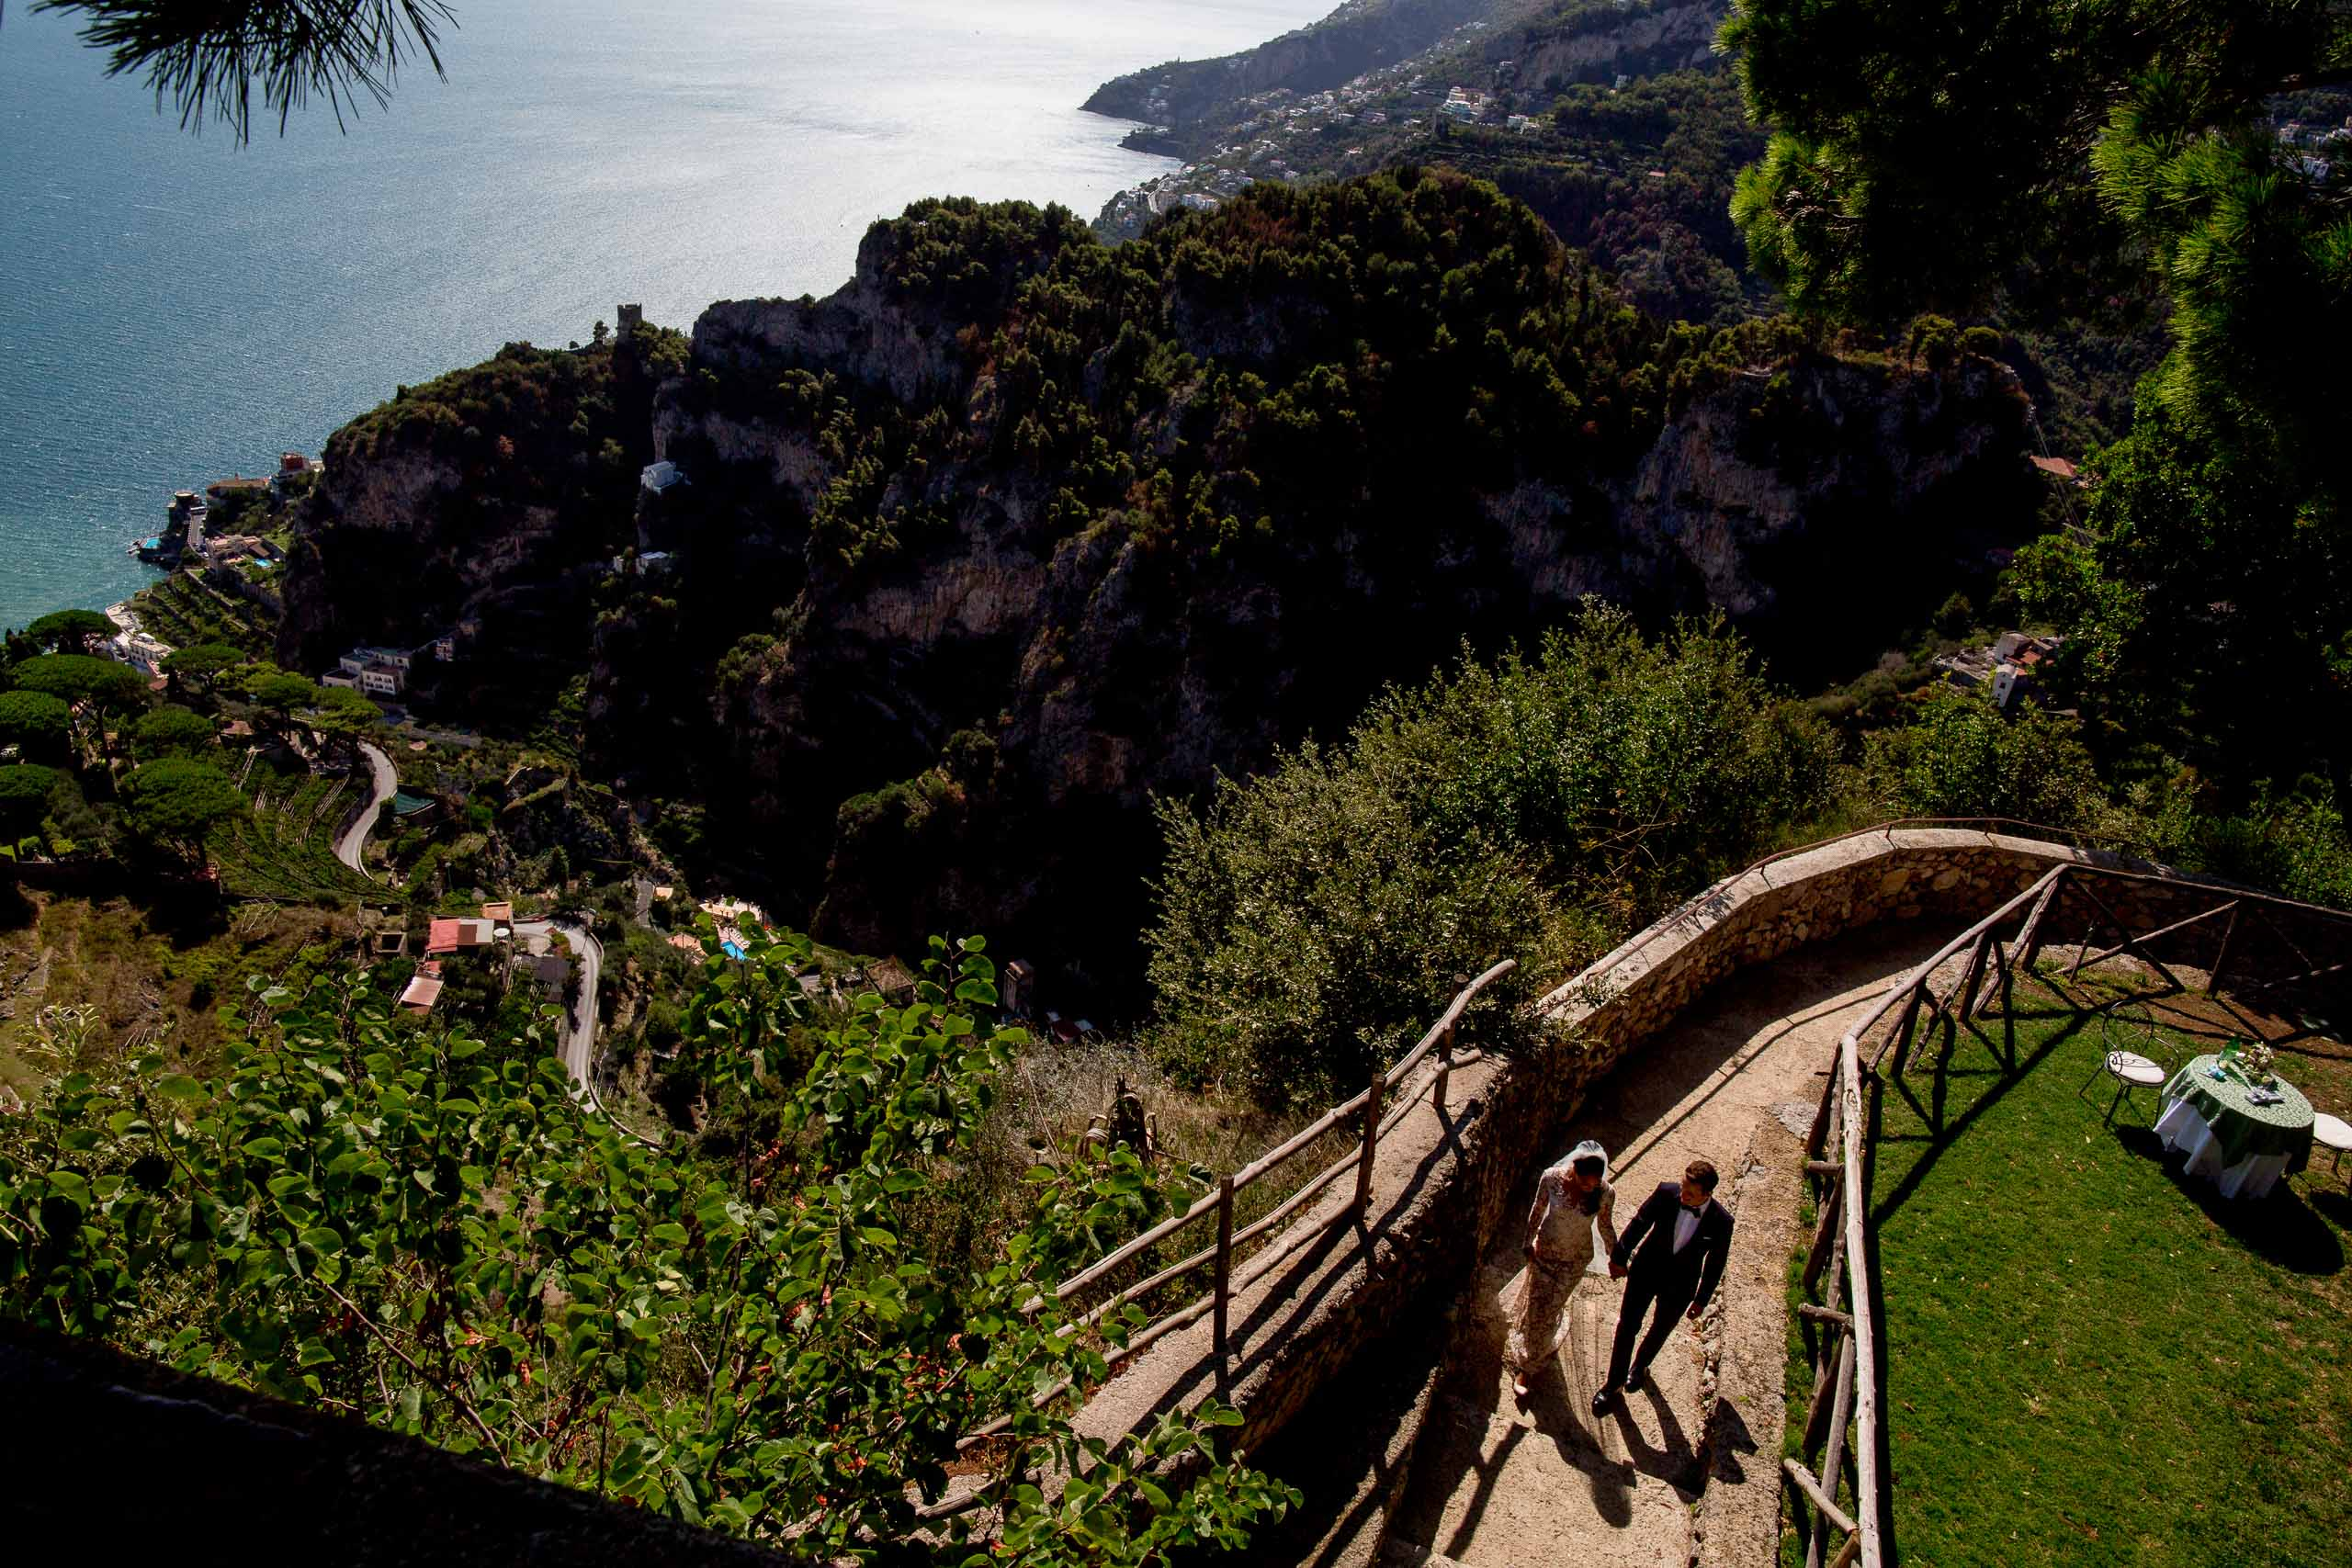 Stunning bride and groom photo at Villa Cimbrone for their Ravello elopement along the Amafi coast in Italy.